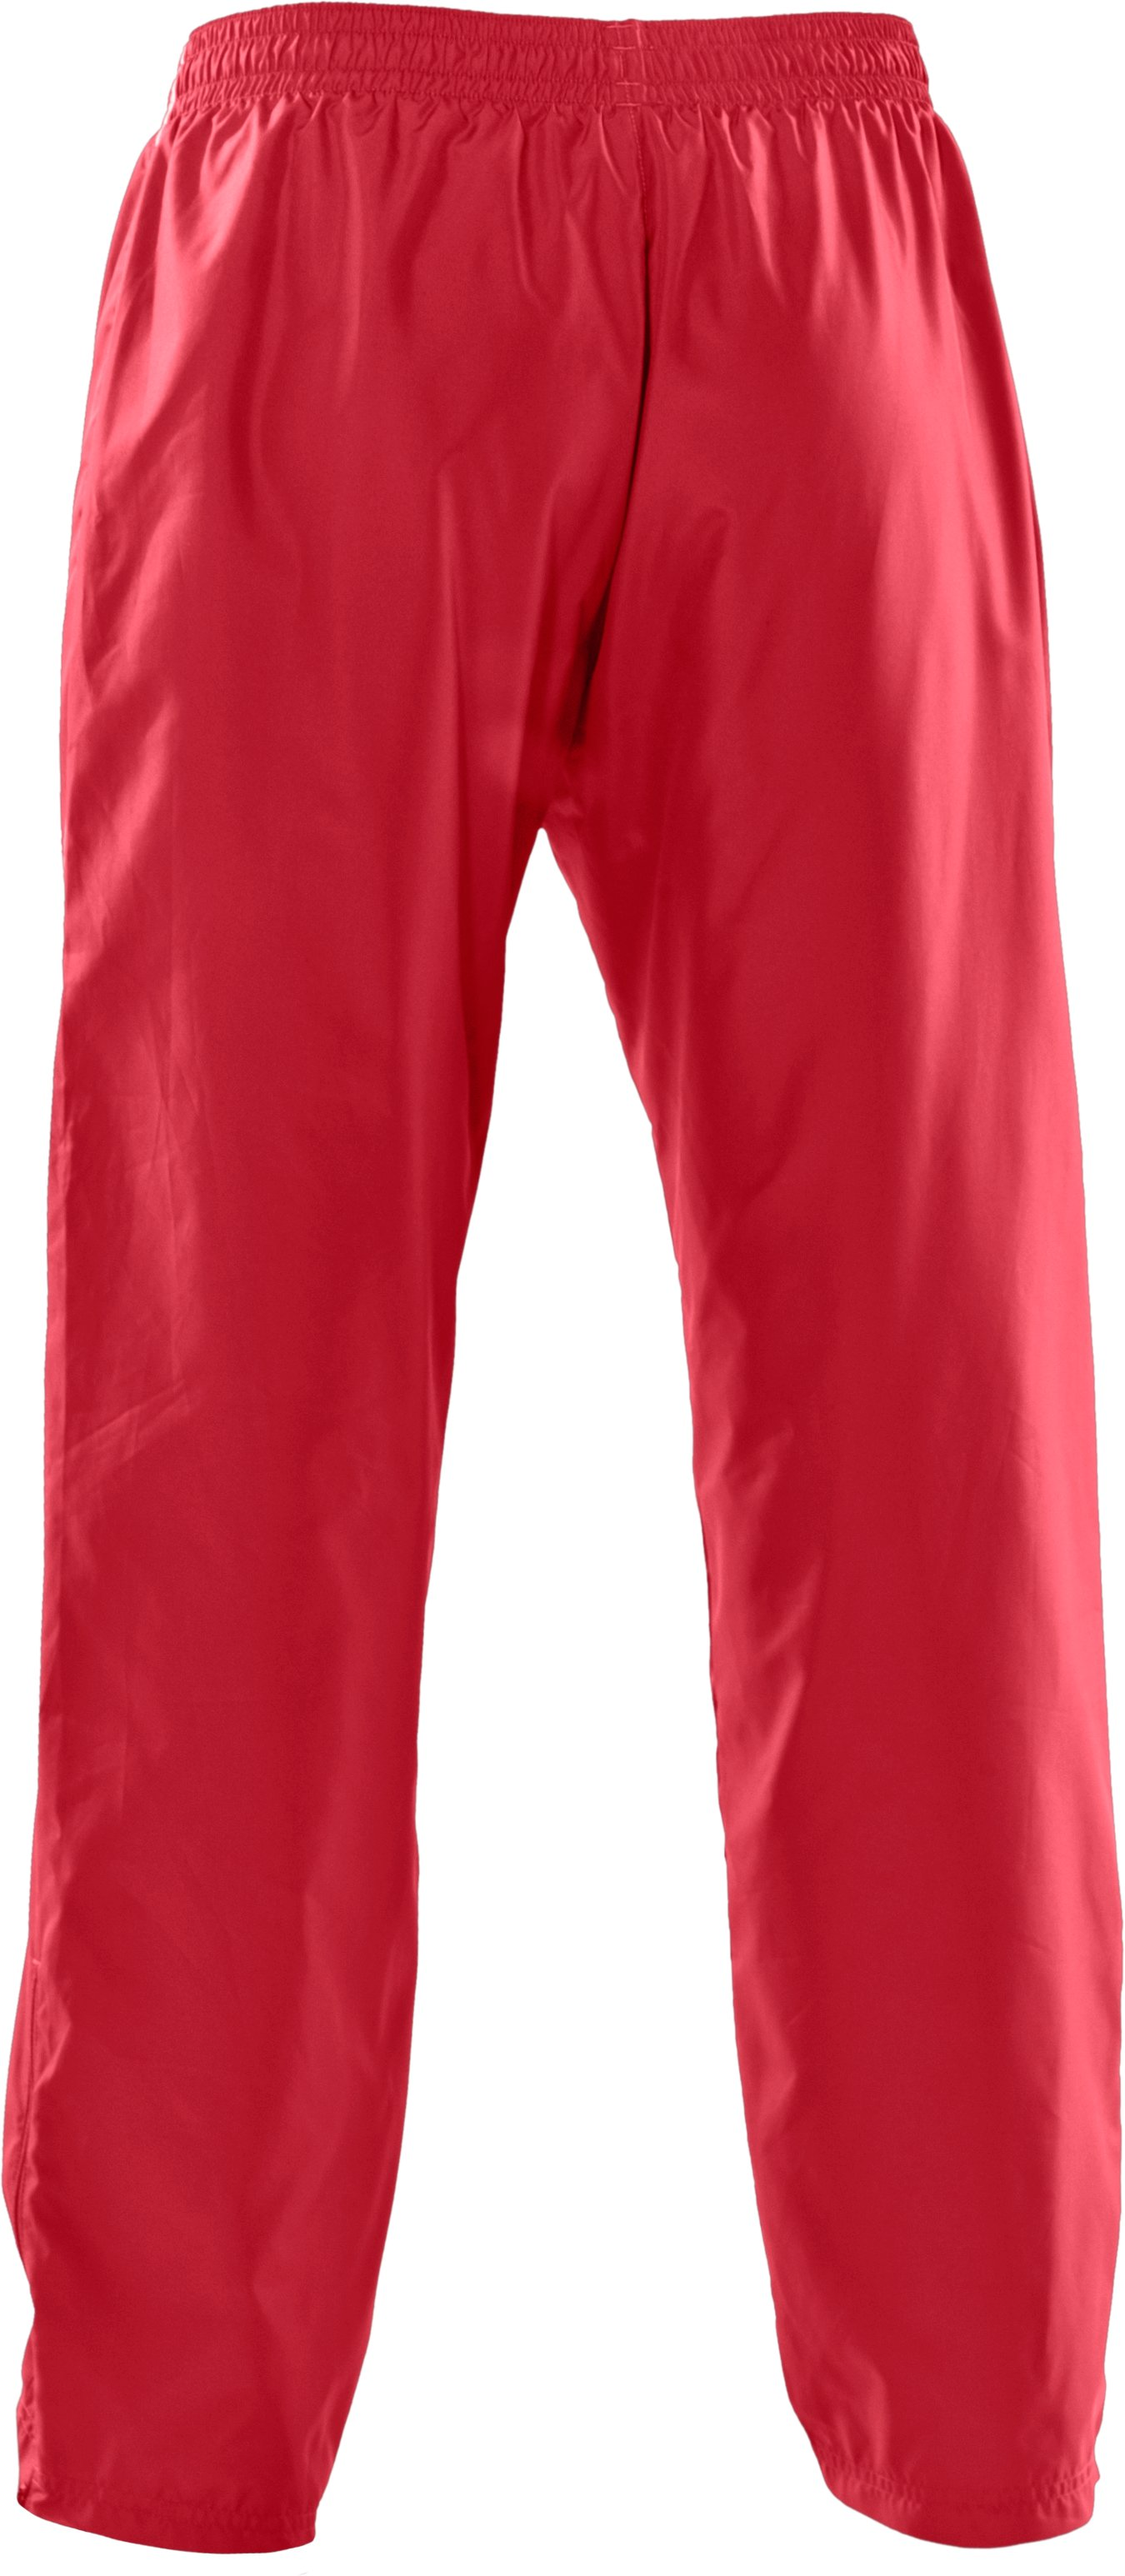 Women's Advance Woven Warm-Up Pants, Red